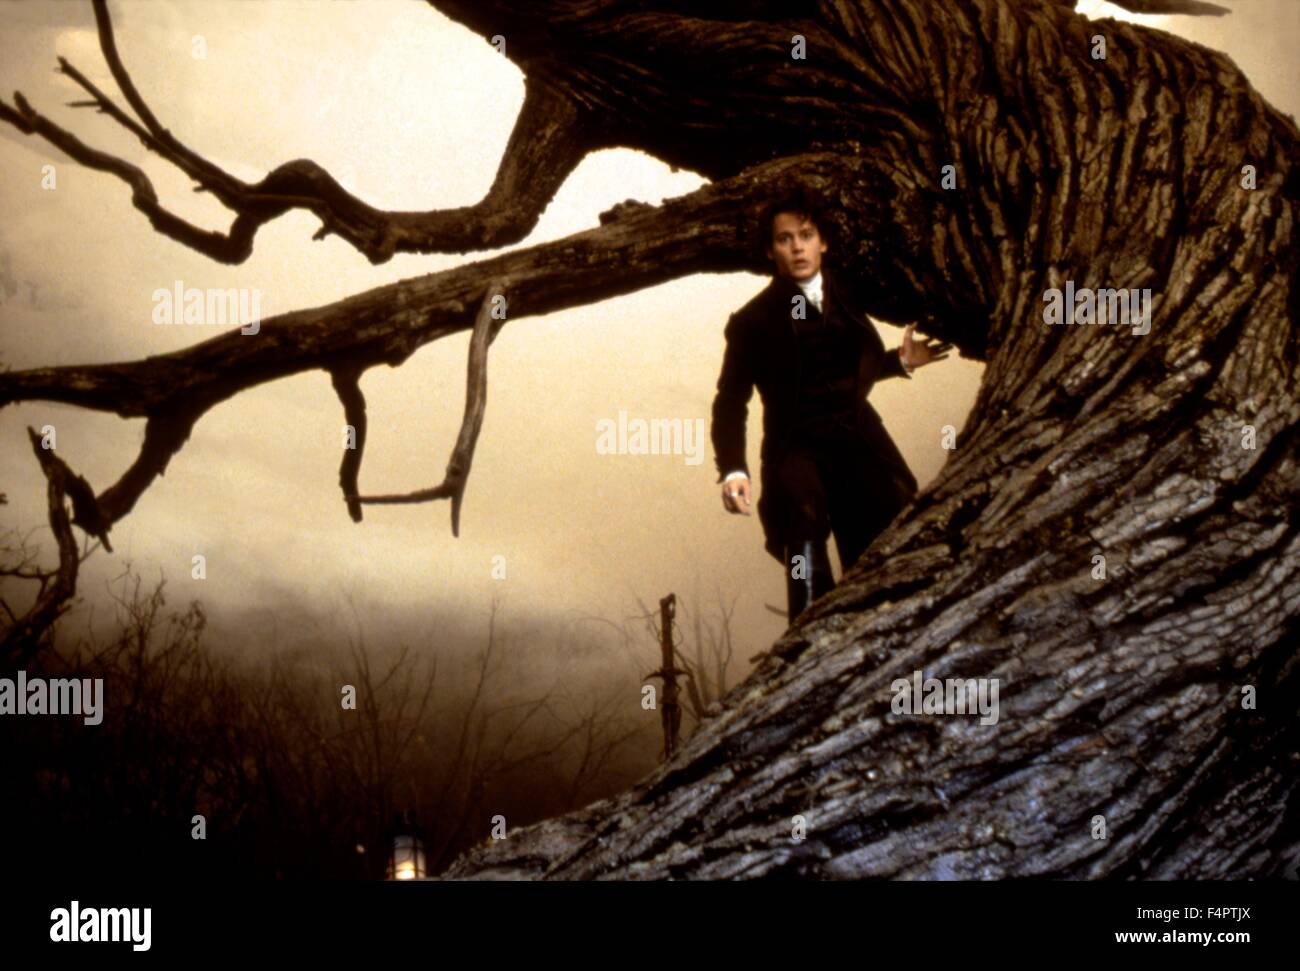 Johnny Depp / Sleepy Hollow / 1999 directed by Tim Burton [Paramount Pictures] Stock Photo